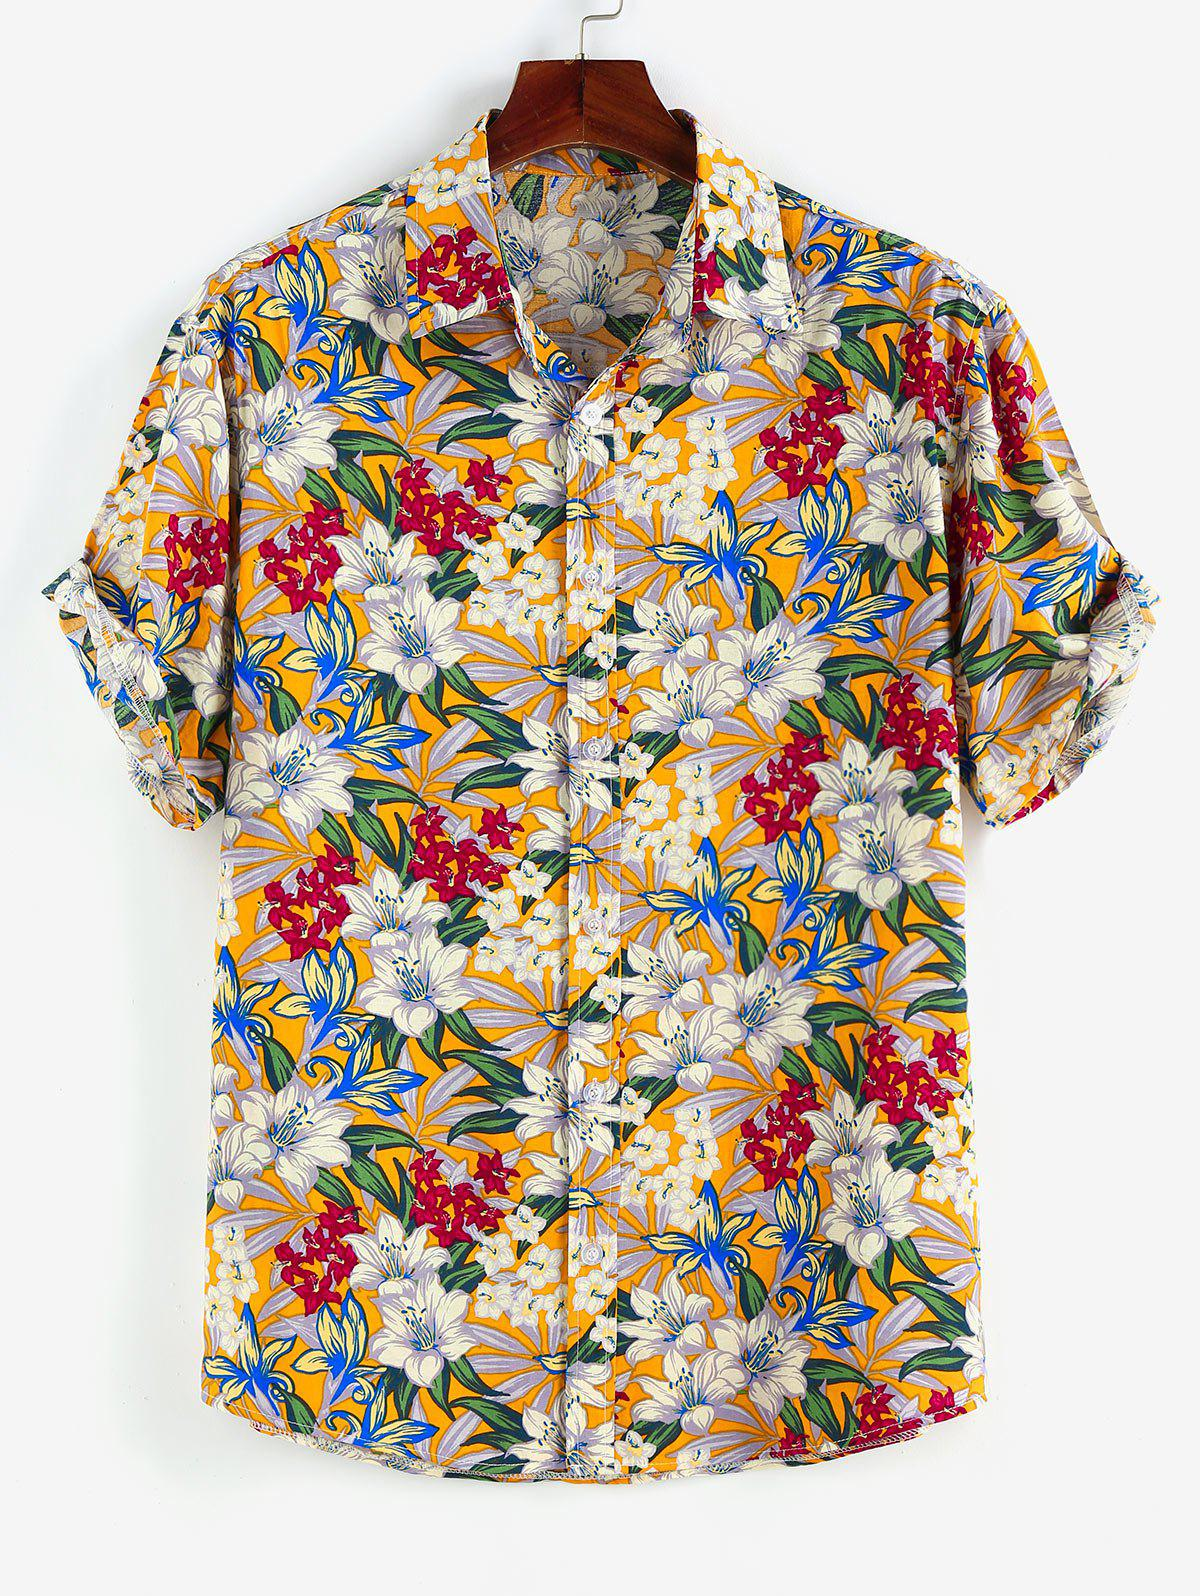 Fashion Allover Floral Print Button Up Shirt